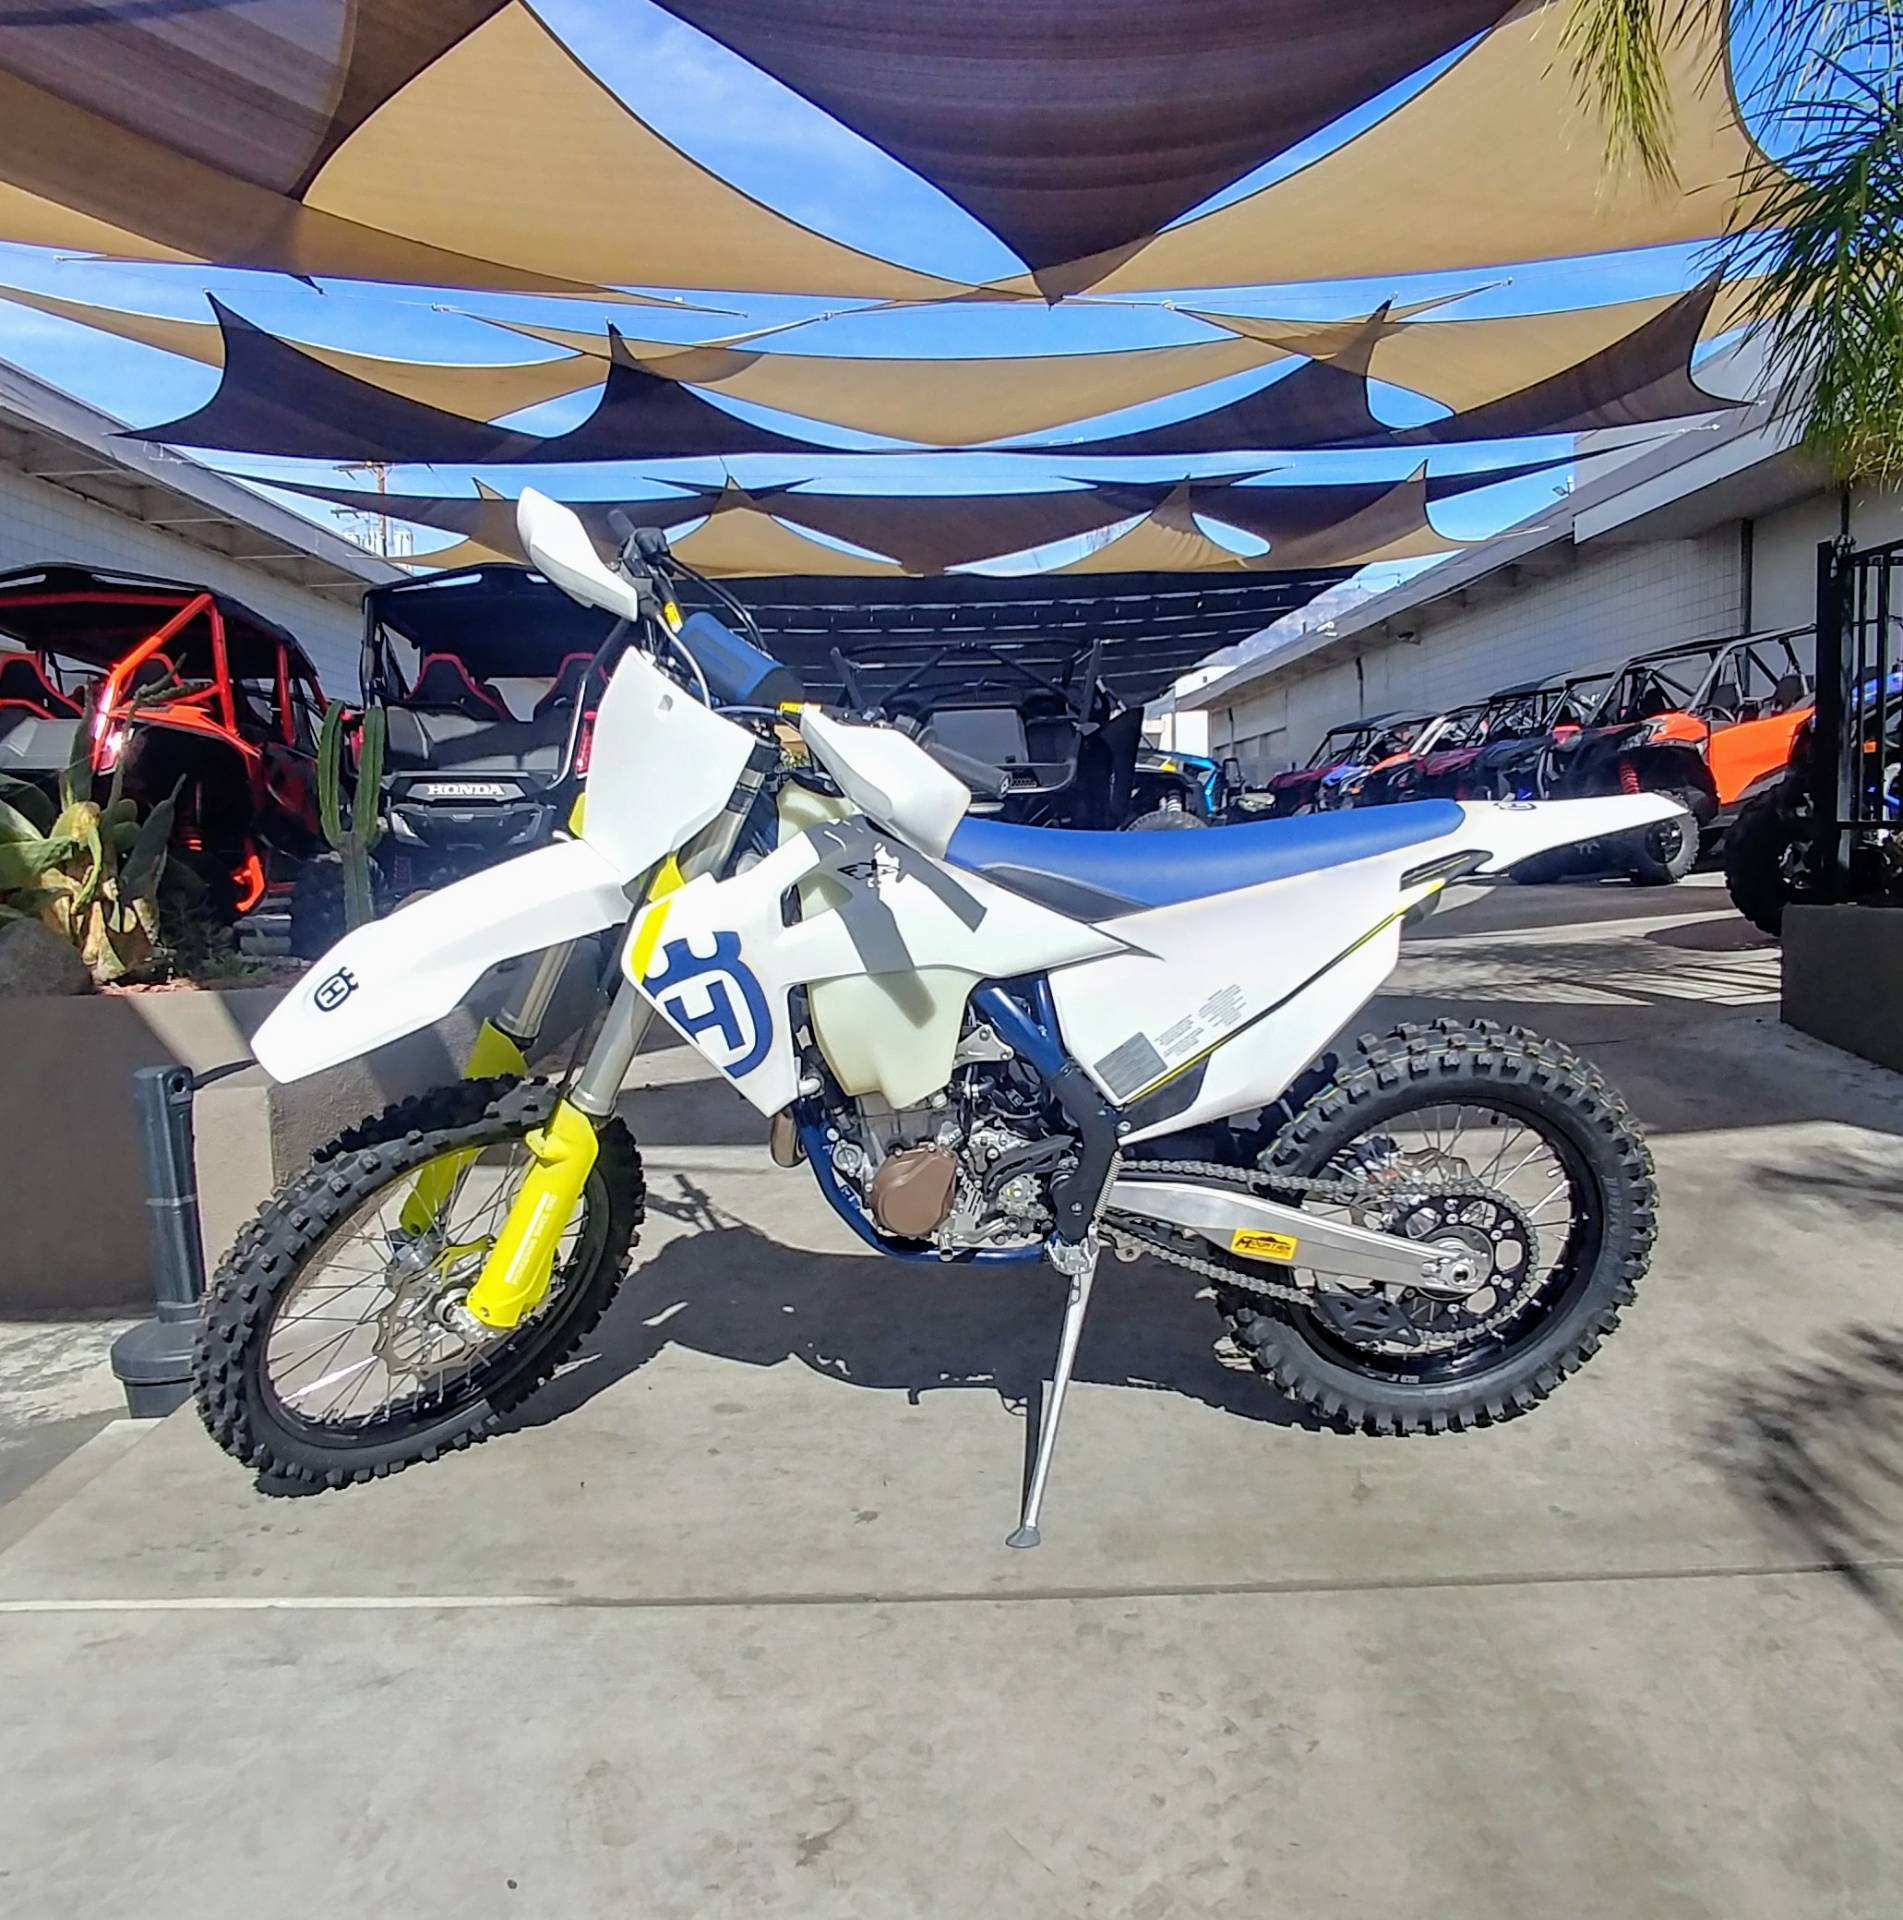 2019 Husqvarna FX 450 in Ontario, California - Photo 2